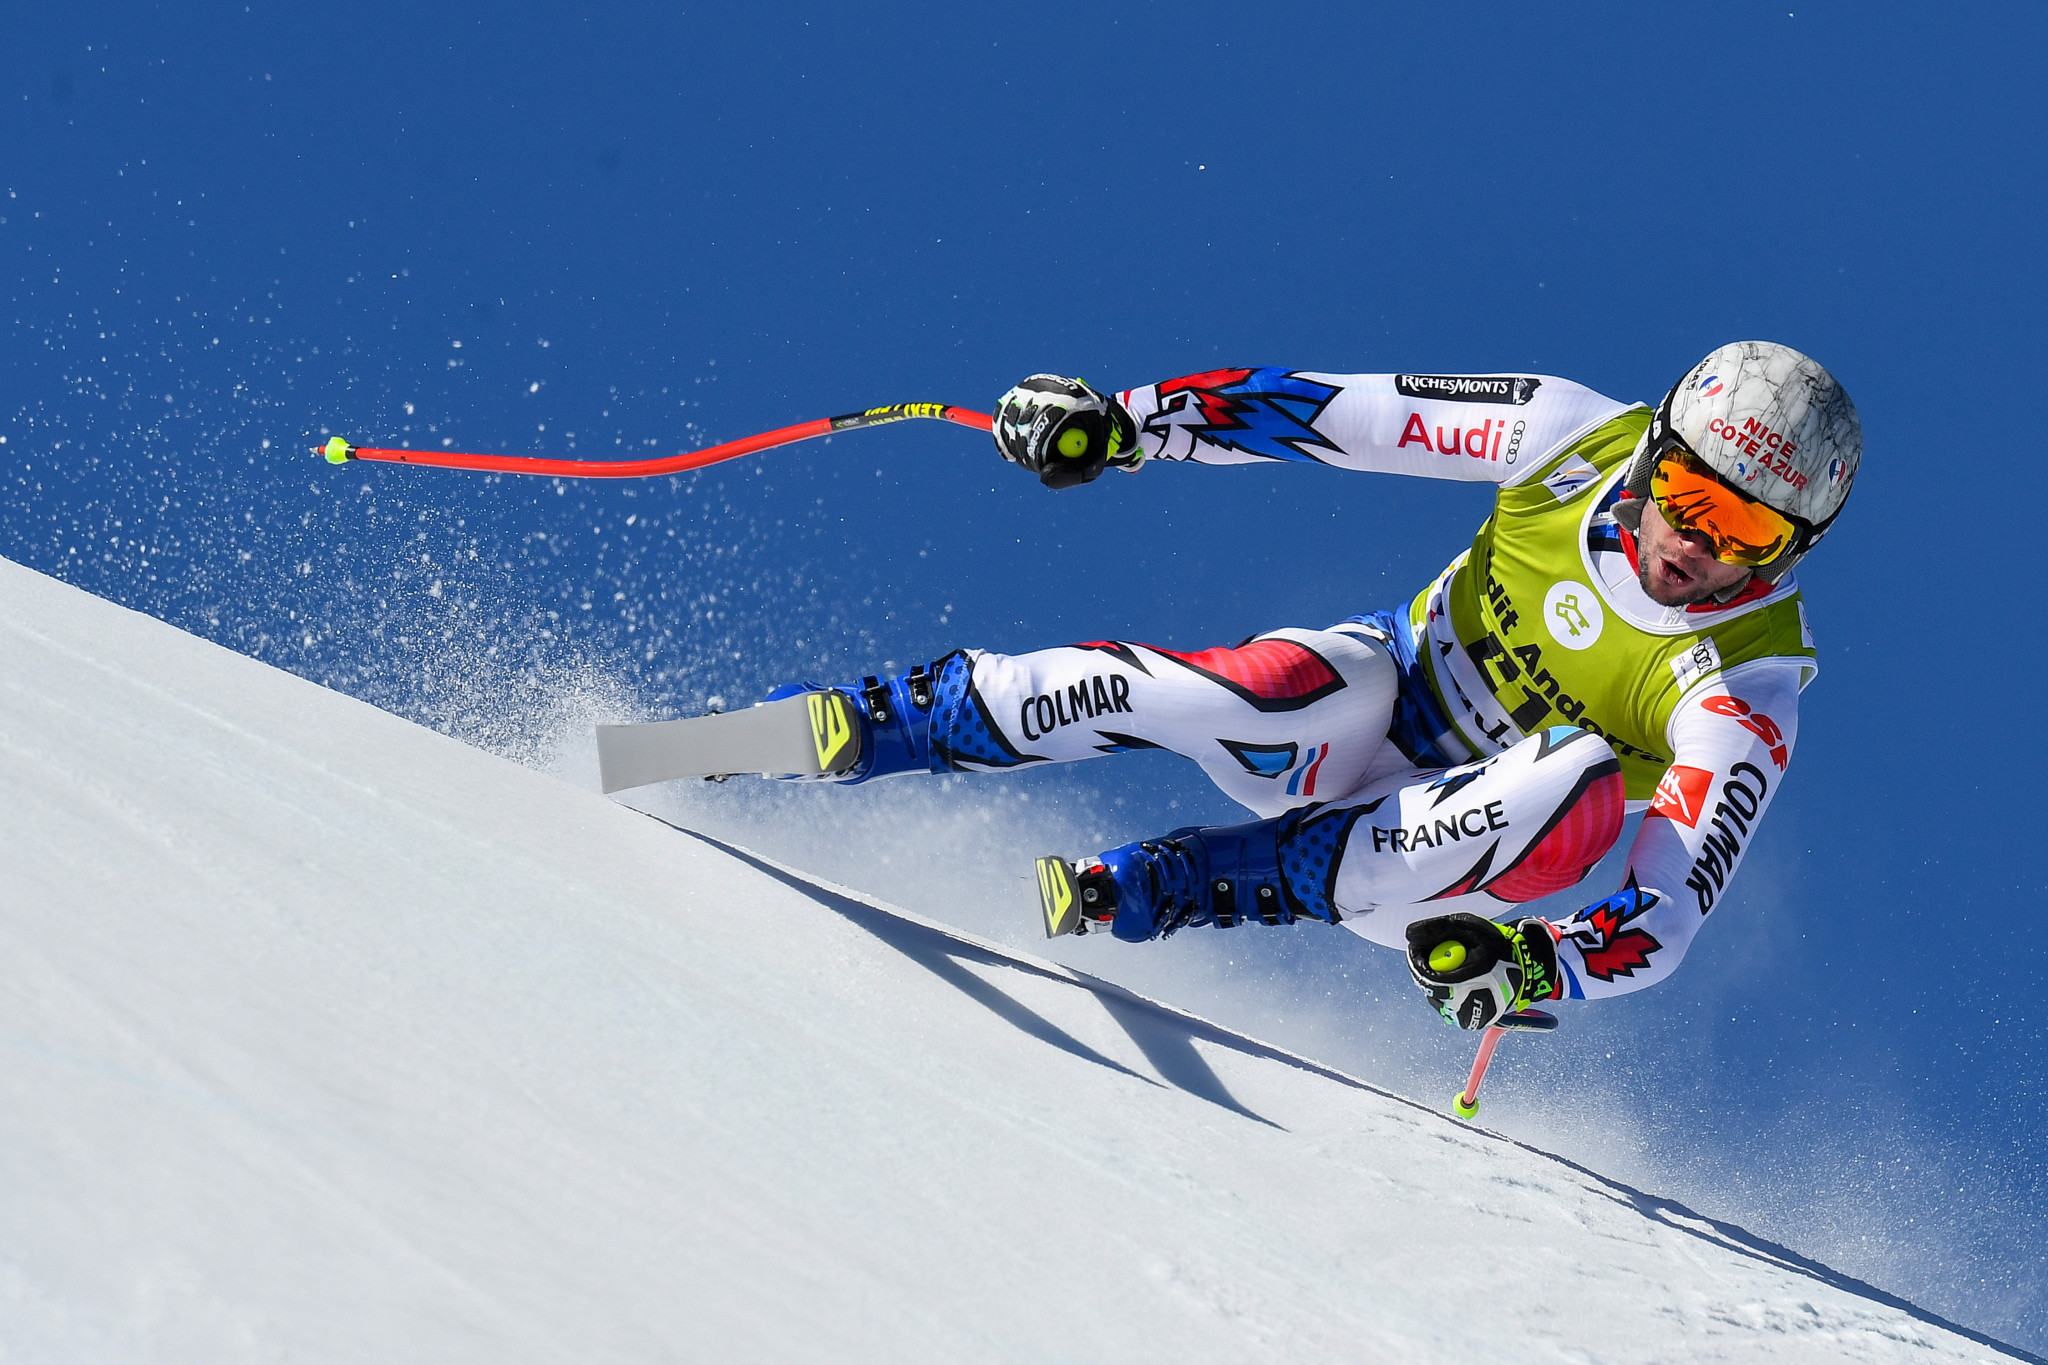 Soldeu in Andorra staged this year's Alpine Skiing World Cup finals in March ©Getty Images